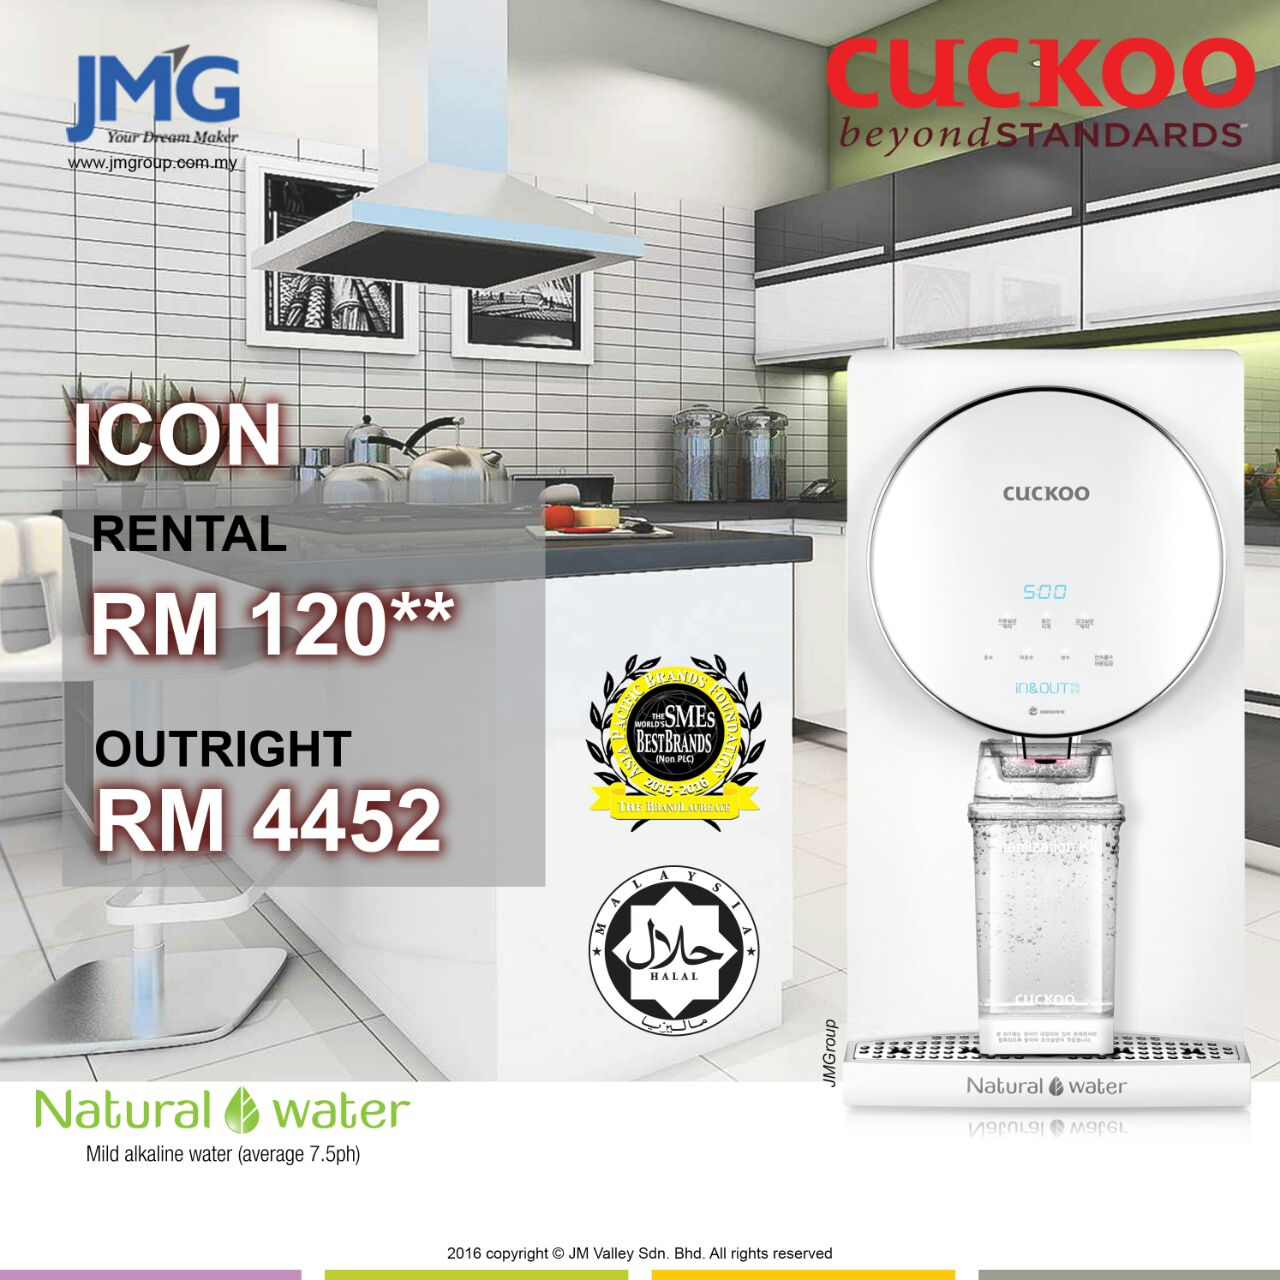 cuckoo-penapis-air-online-business-marketing-internet-income-online-sifu-aridz